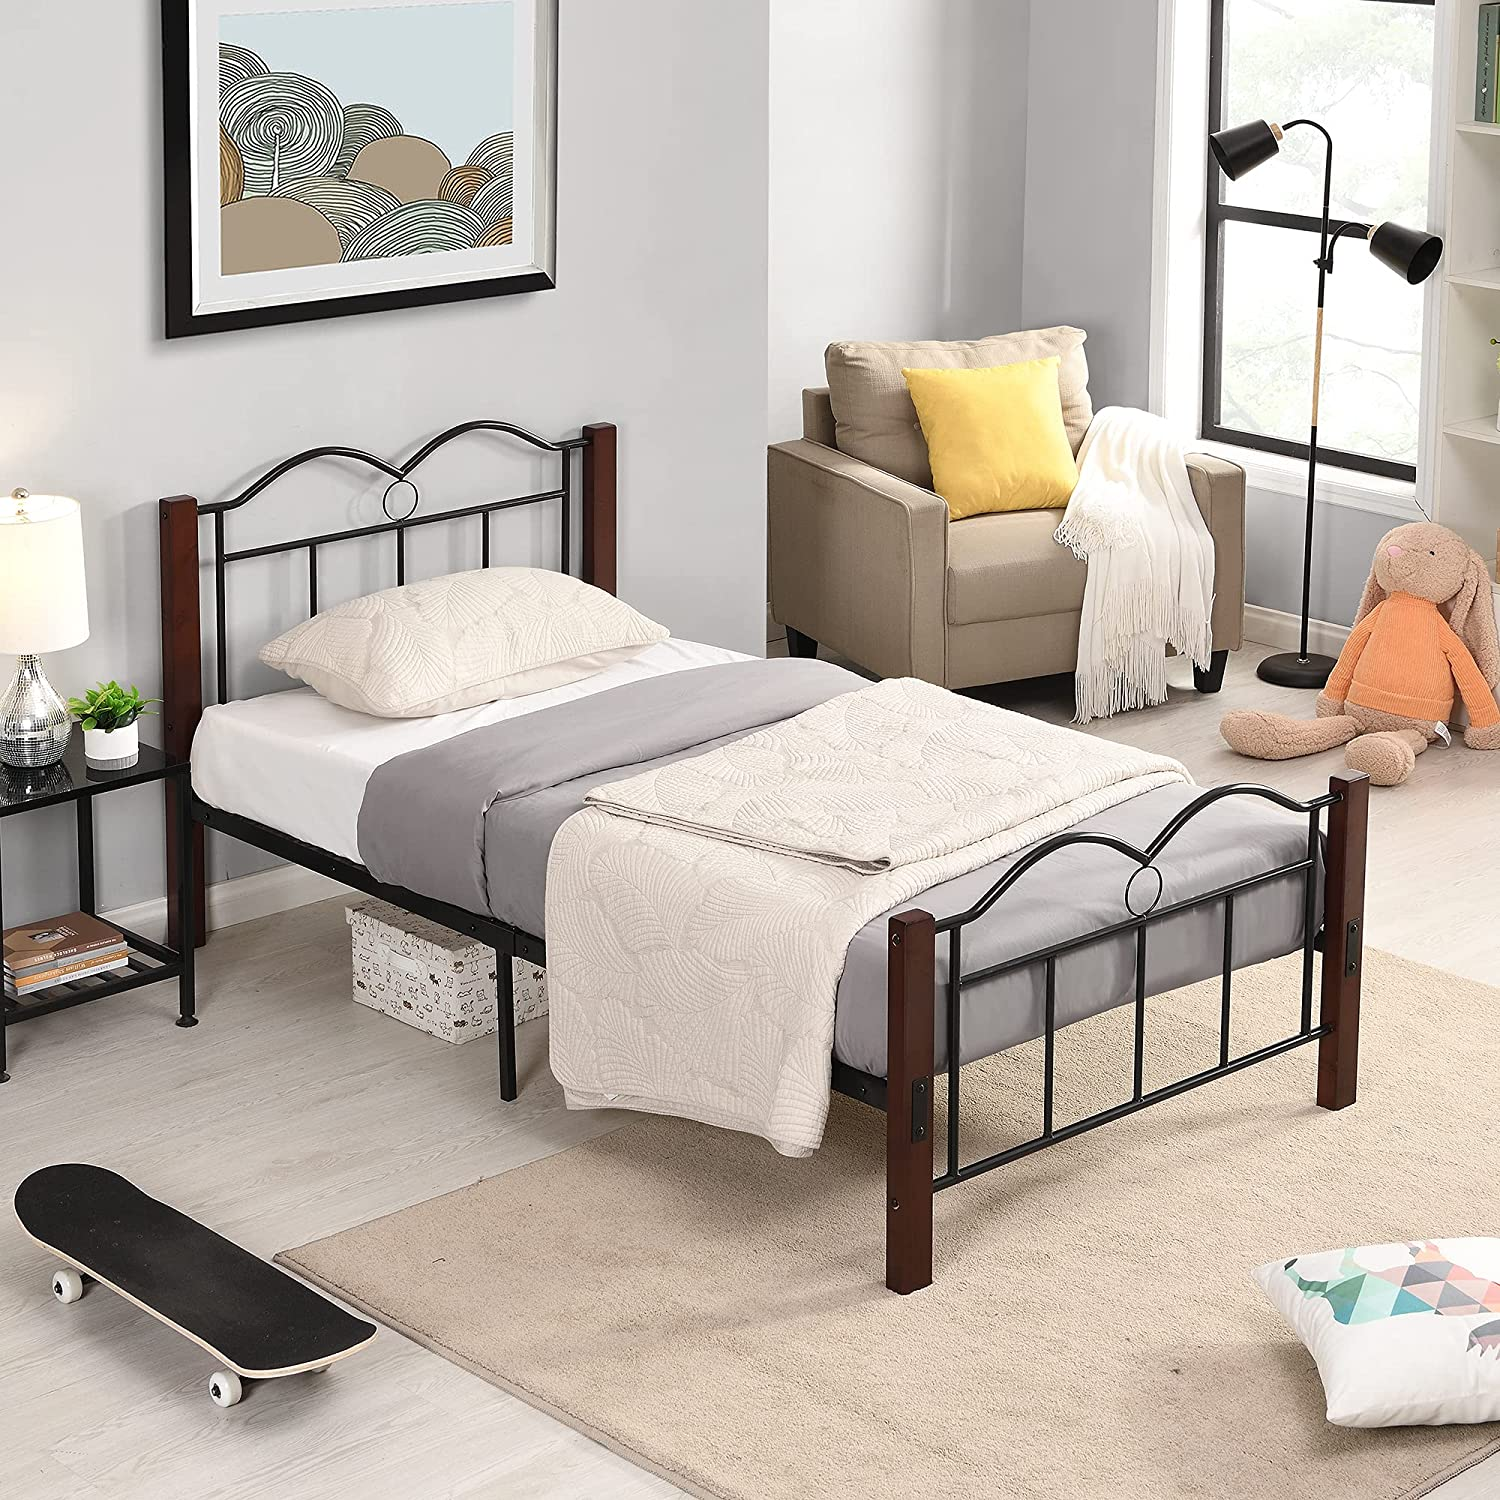 Twin Size Bed Frame Metal Hea Ranking TOP8 Mattress Over item handling ☆ Platform Foundation with